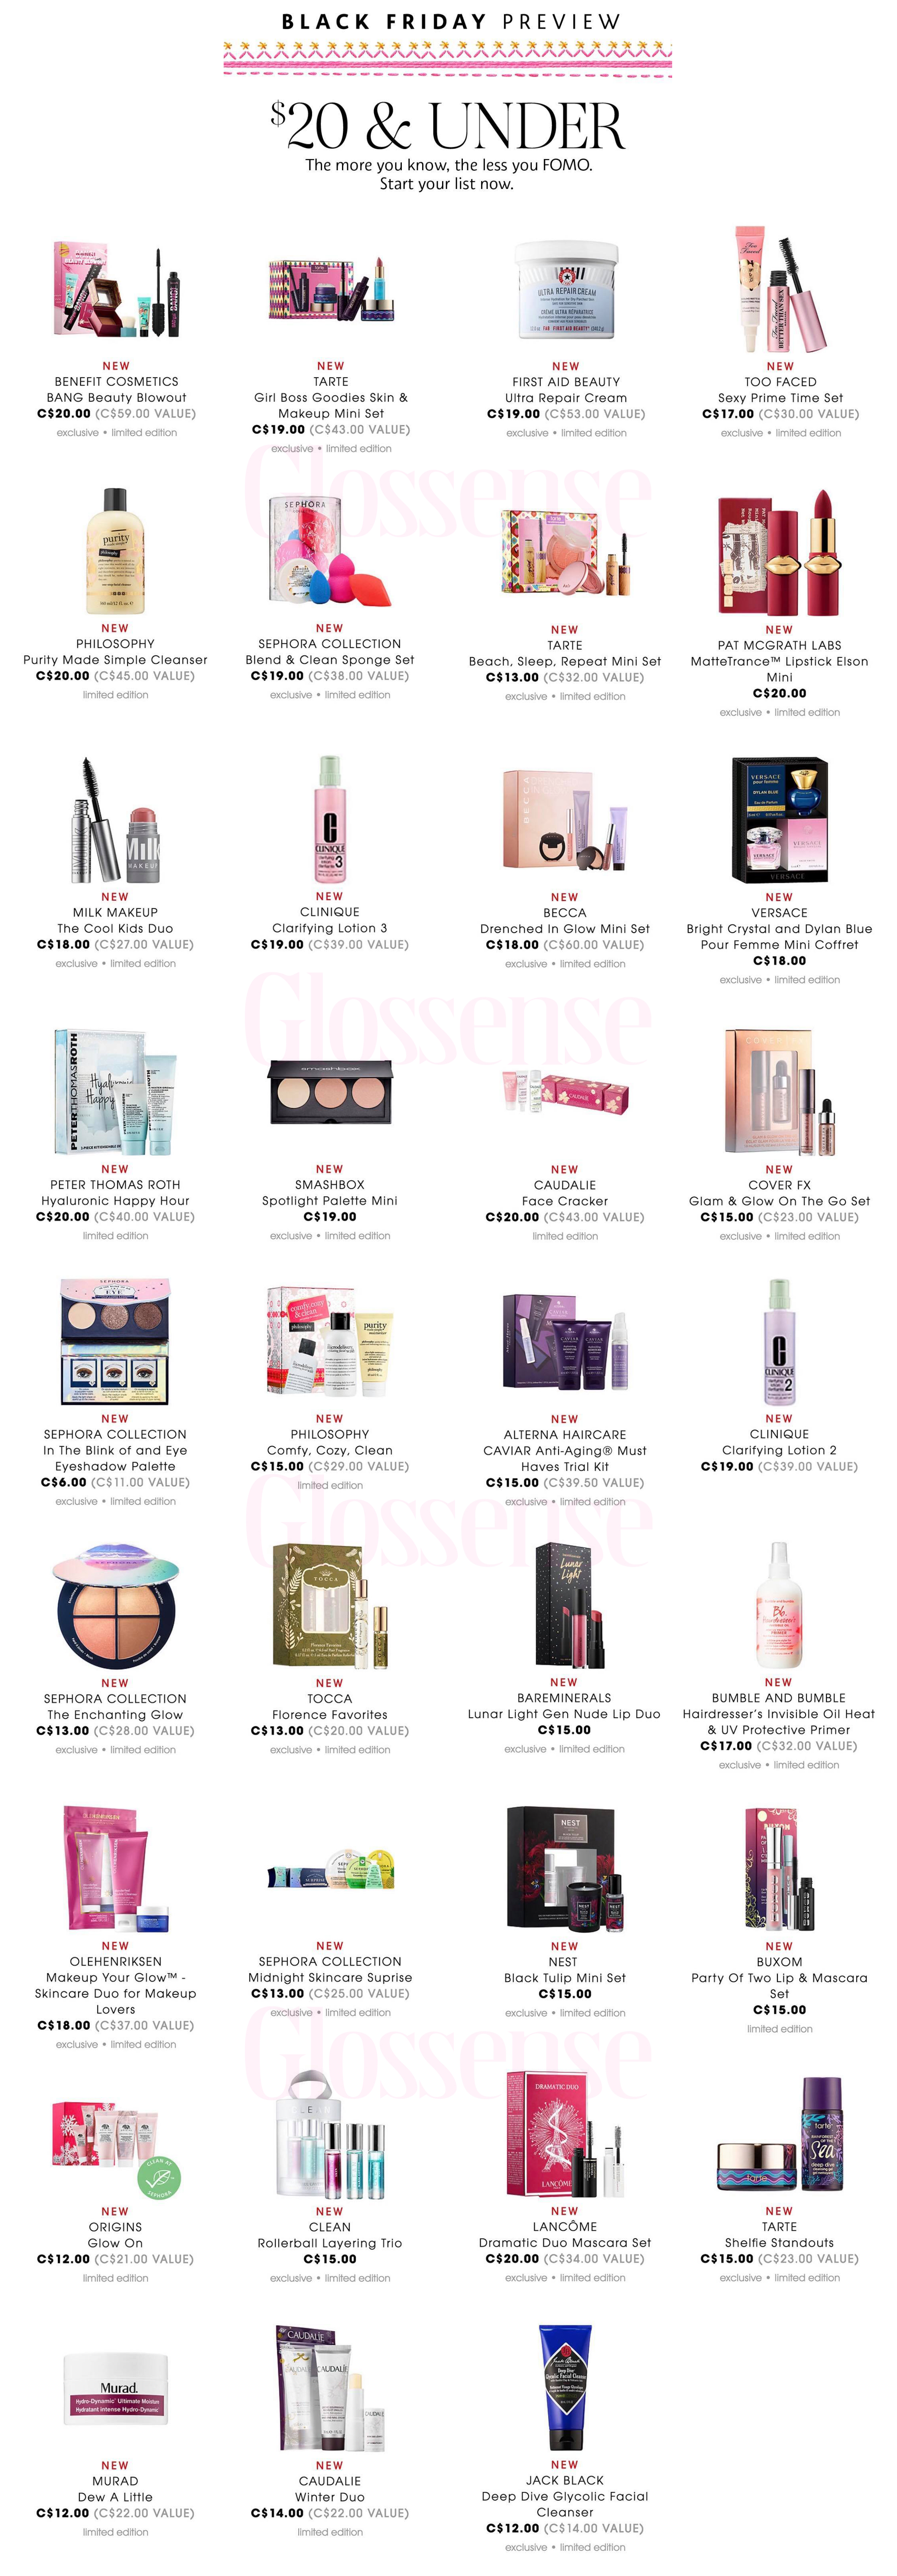 Sephora Canada Black Friday Full Preview Details 20 Under Canadian Deals Coming November 23 2018